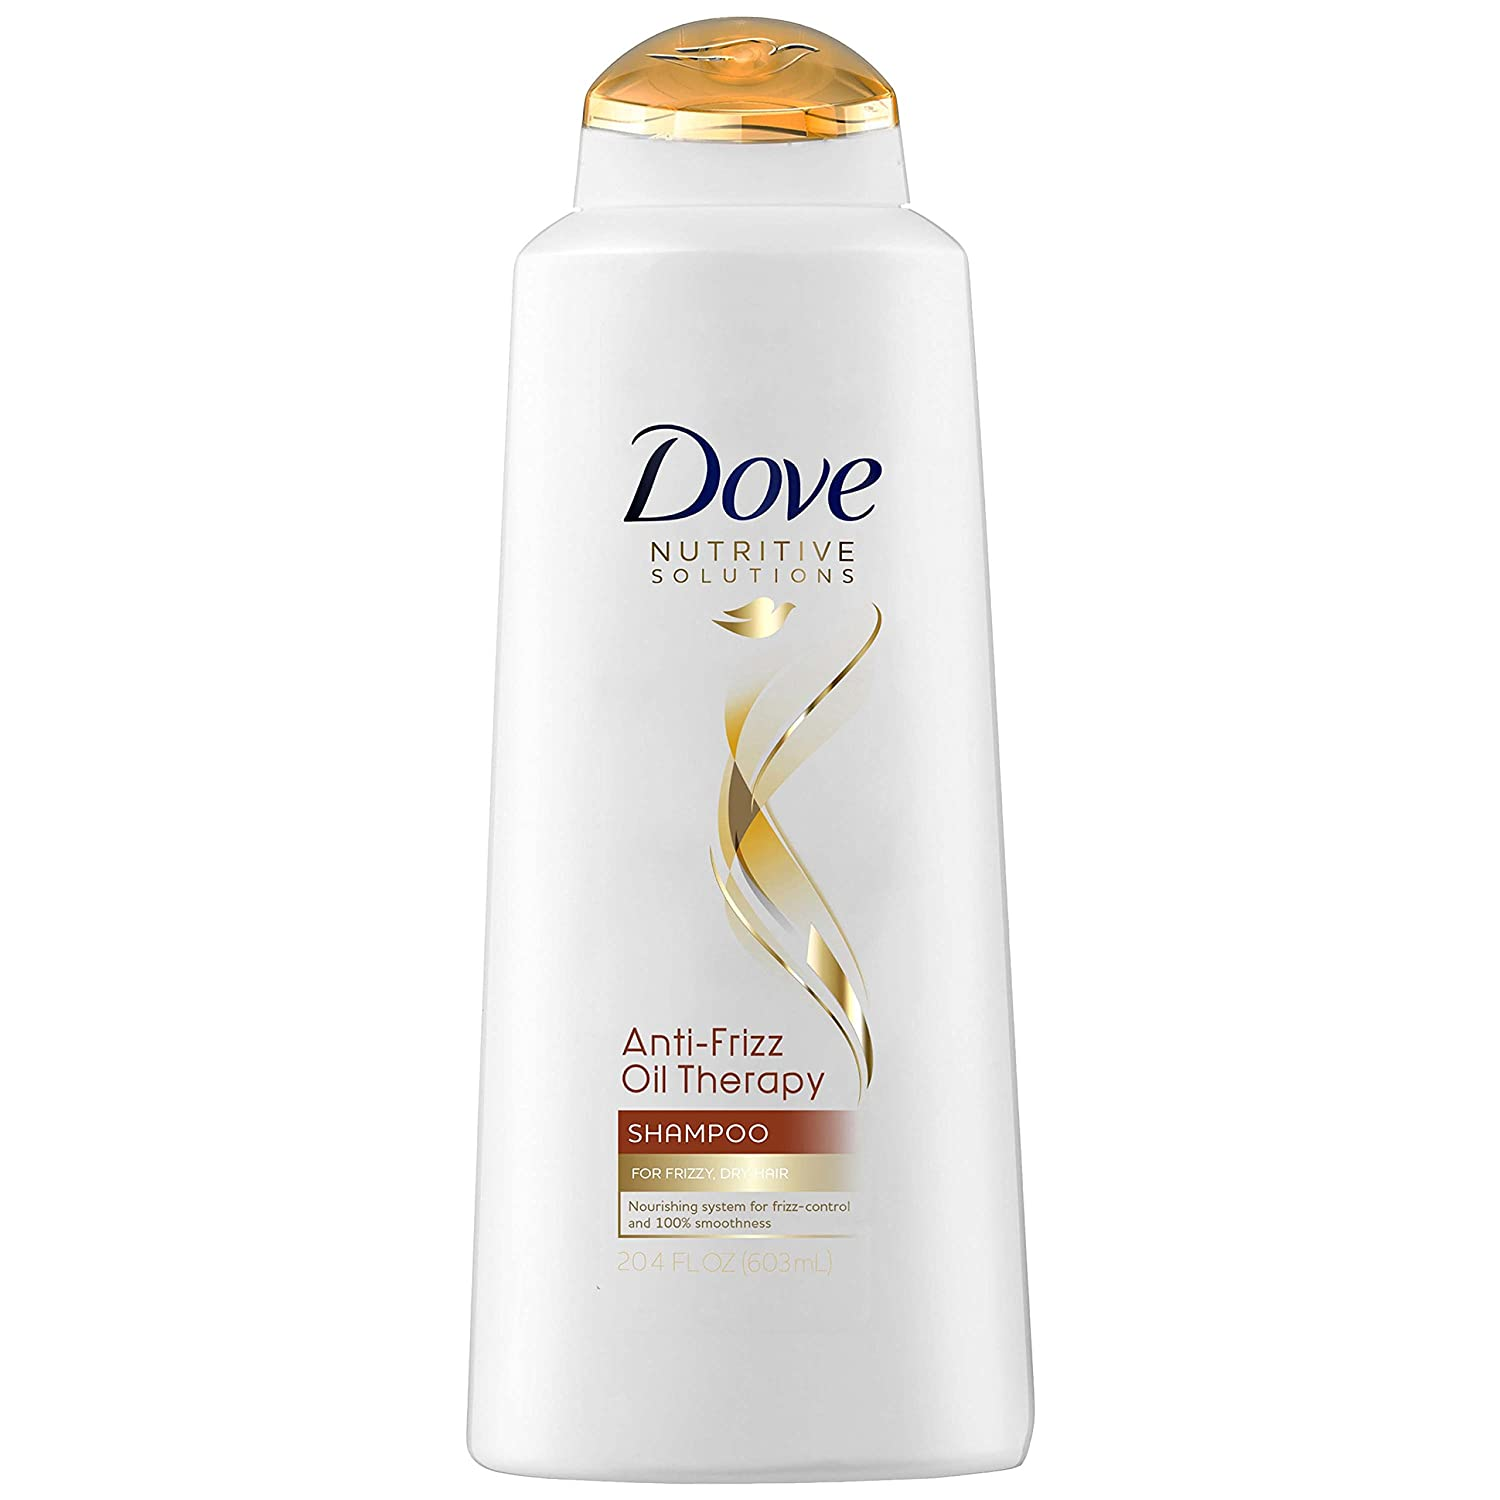 Dove Nutritive Solutions Shampoo, Anti-Frizz Oil Therapy 20.4 Fl oz